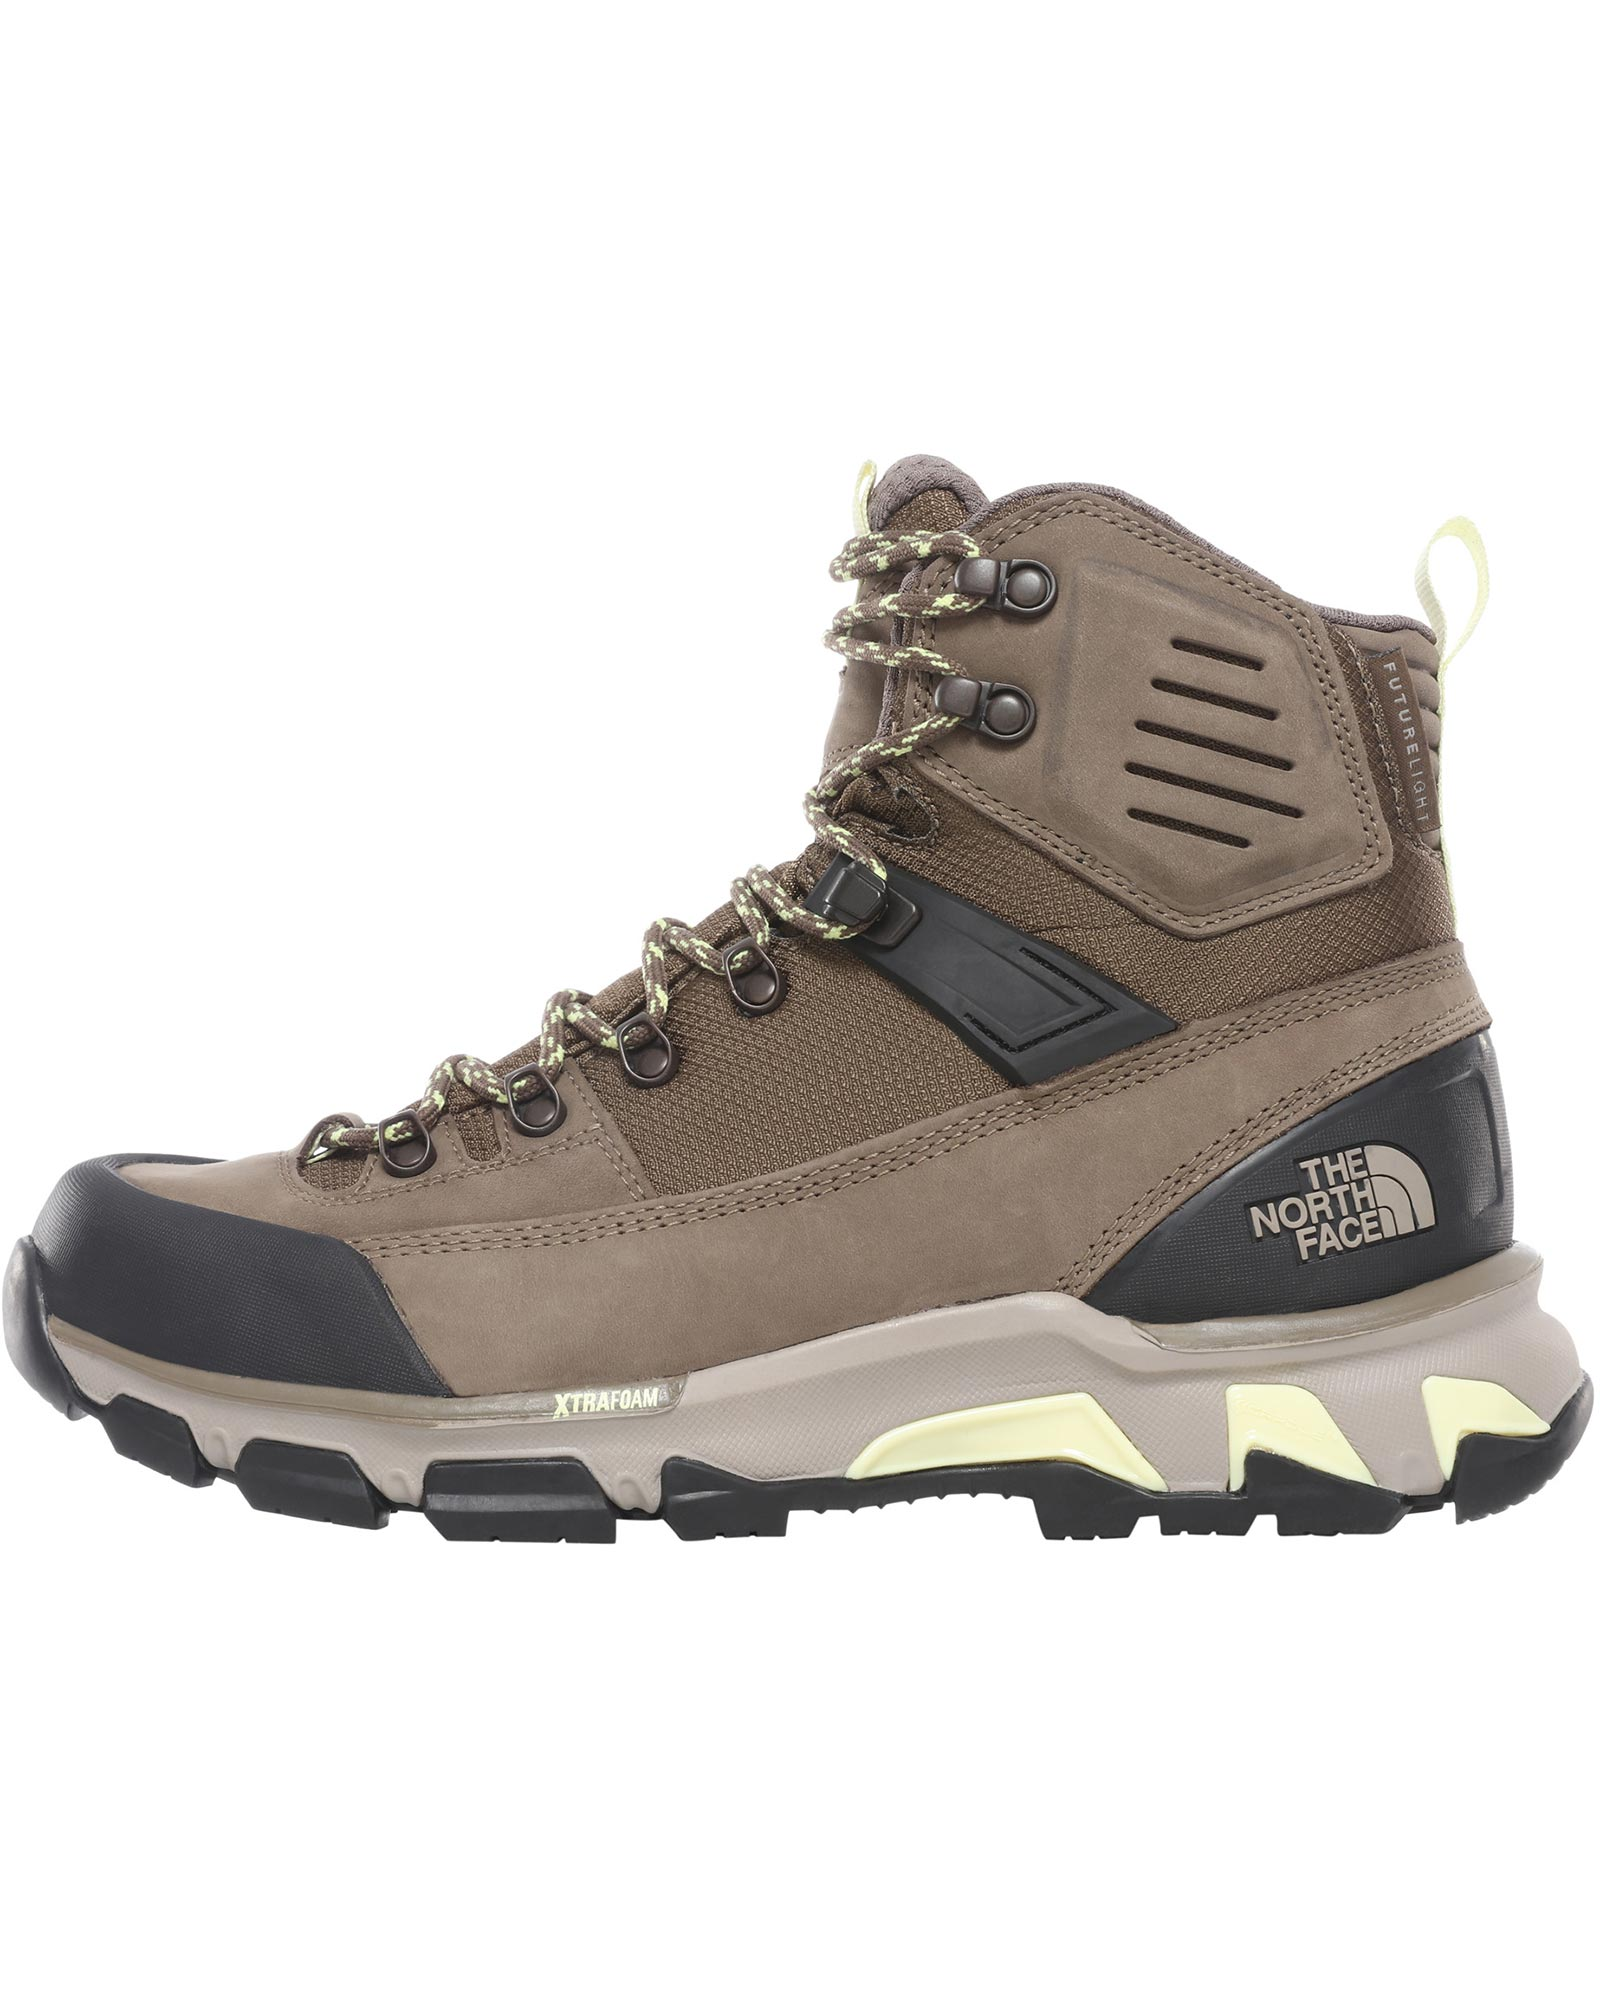 The North Face Women's Crestvale Futurelight Walking Boots 0